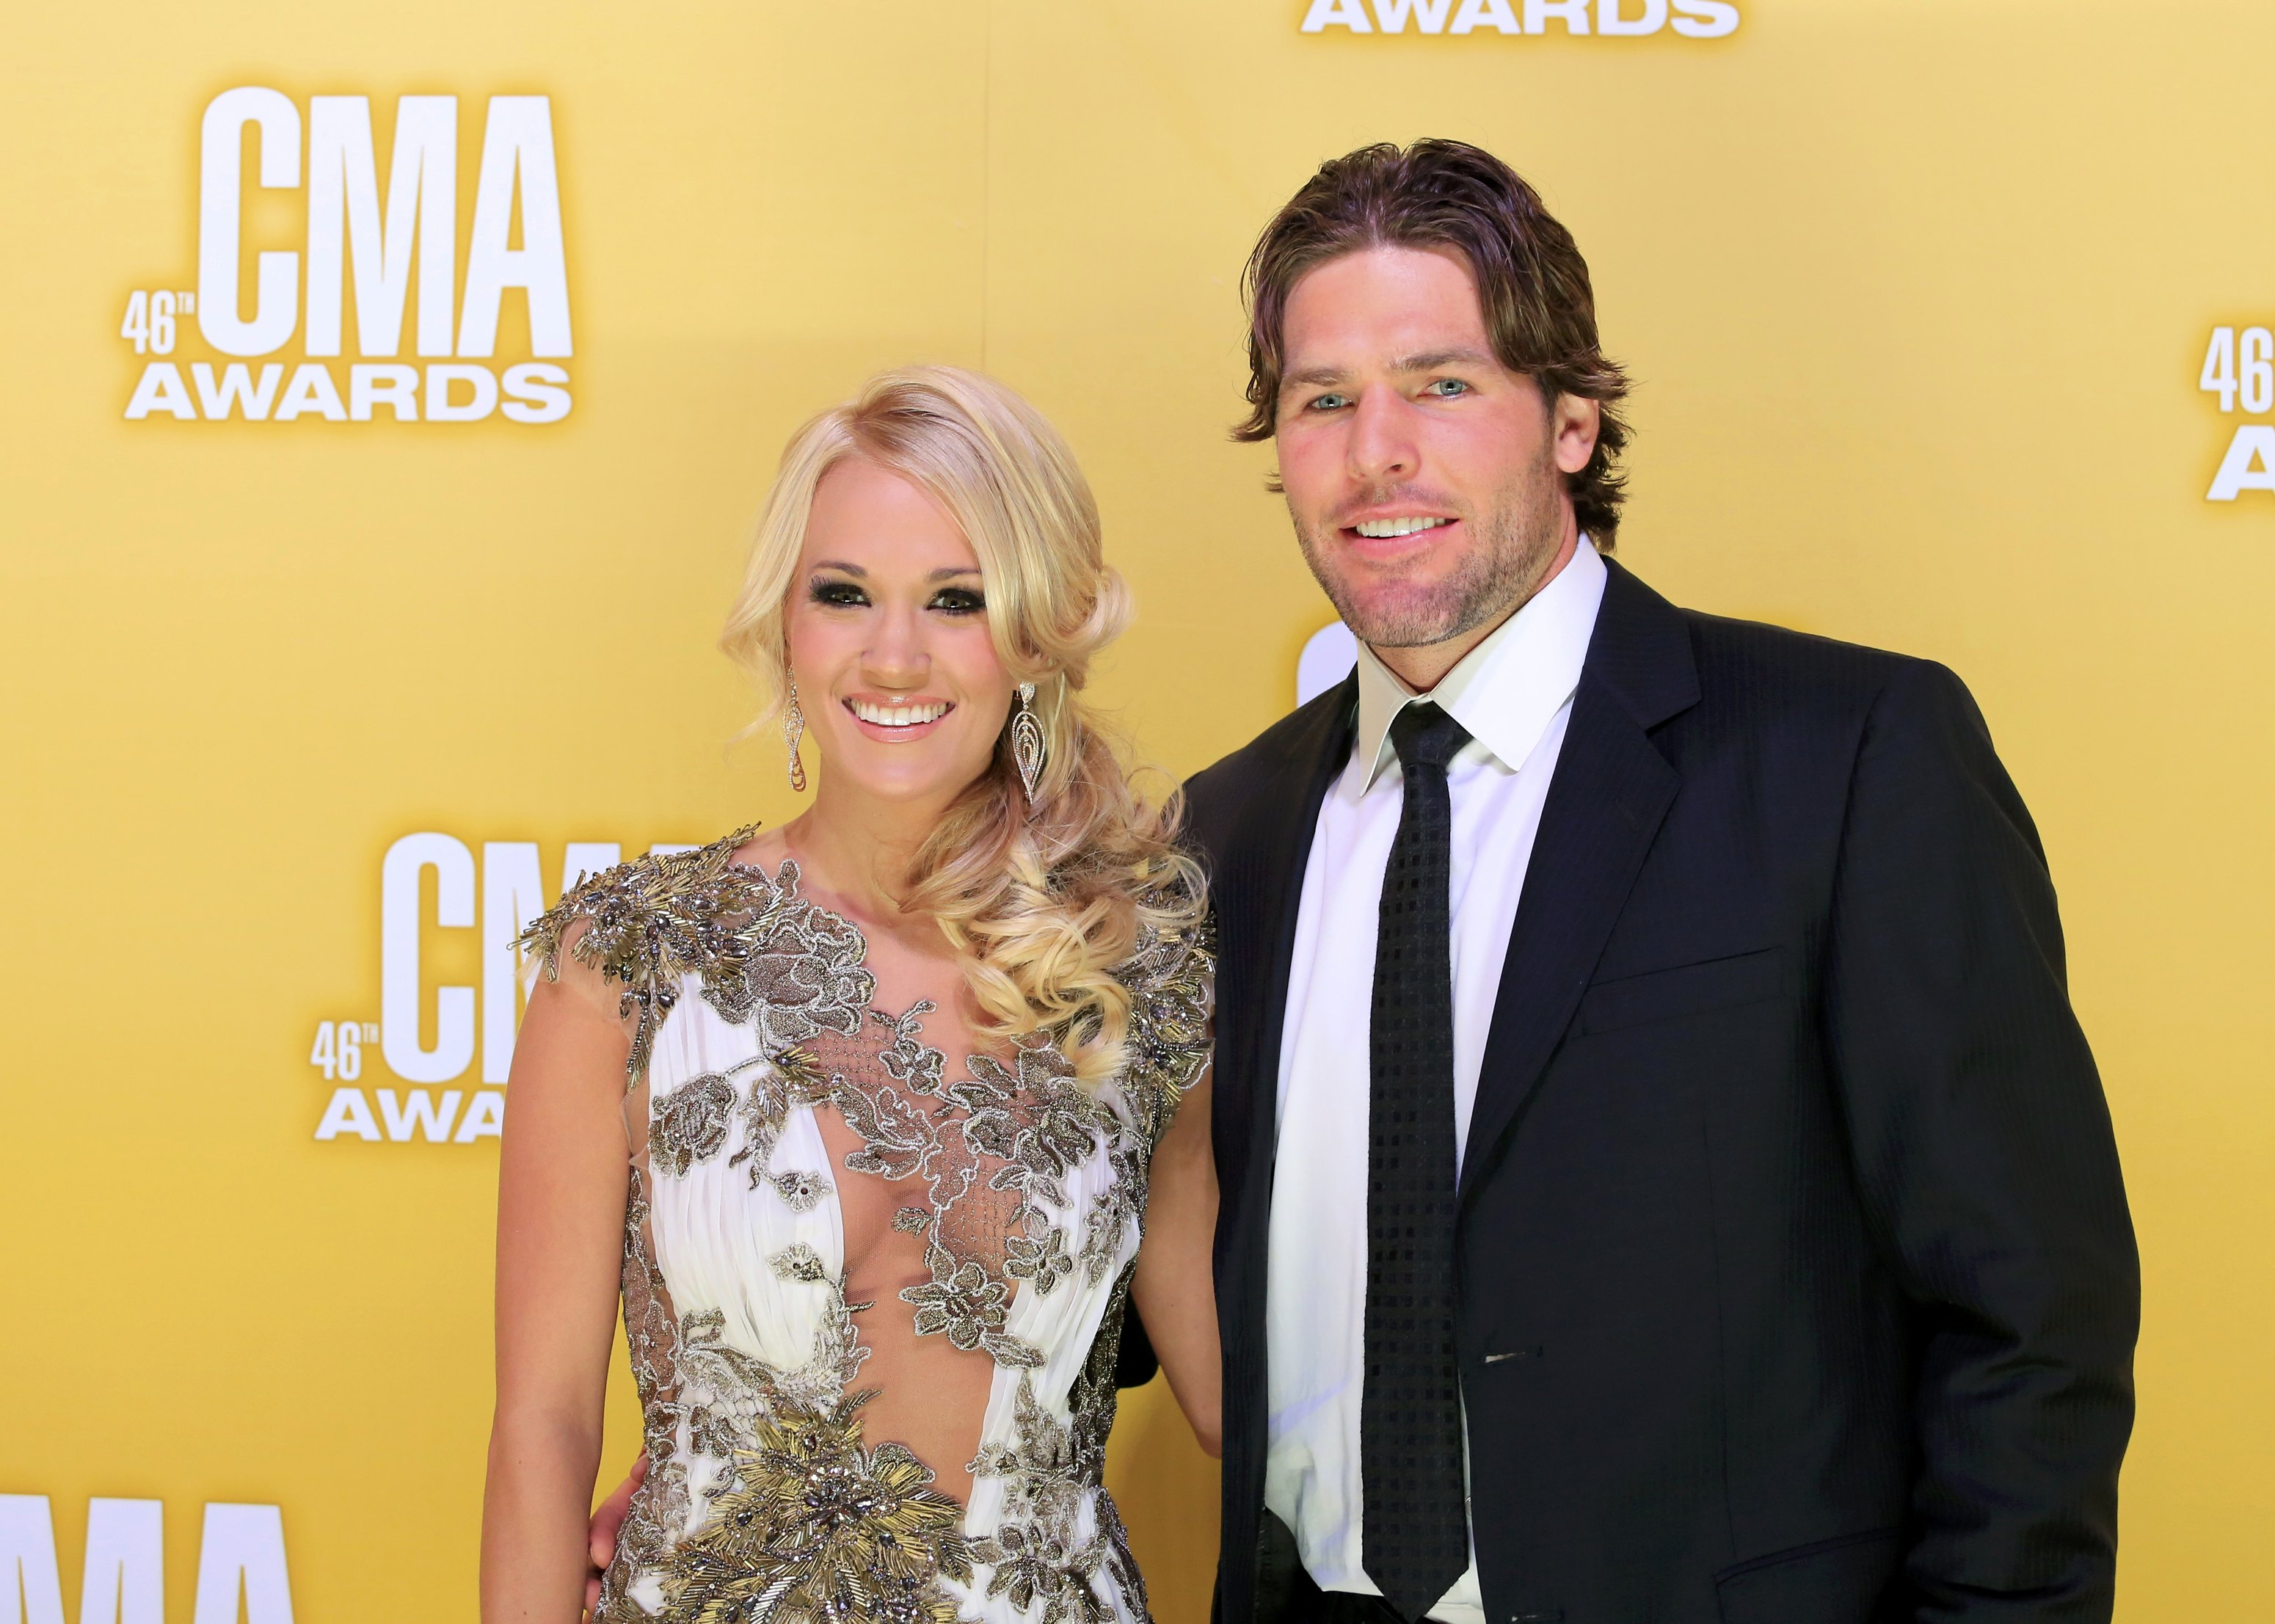 Singer Carrie Underwood and her husband, NHL hockey player Mike Fisher, arrive at the 46th Country Music Association Awards in Nashville, Tenn. (Nov.